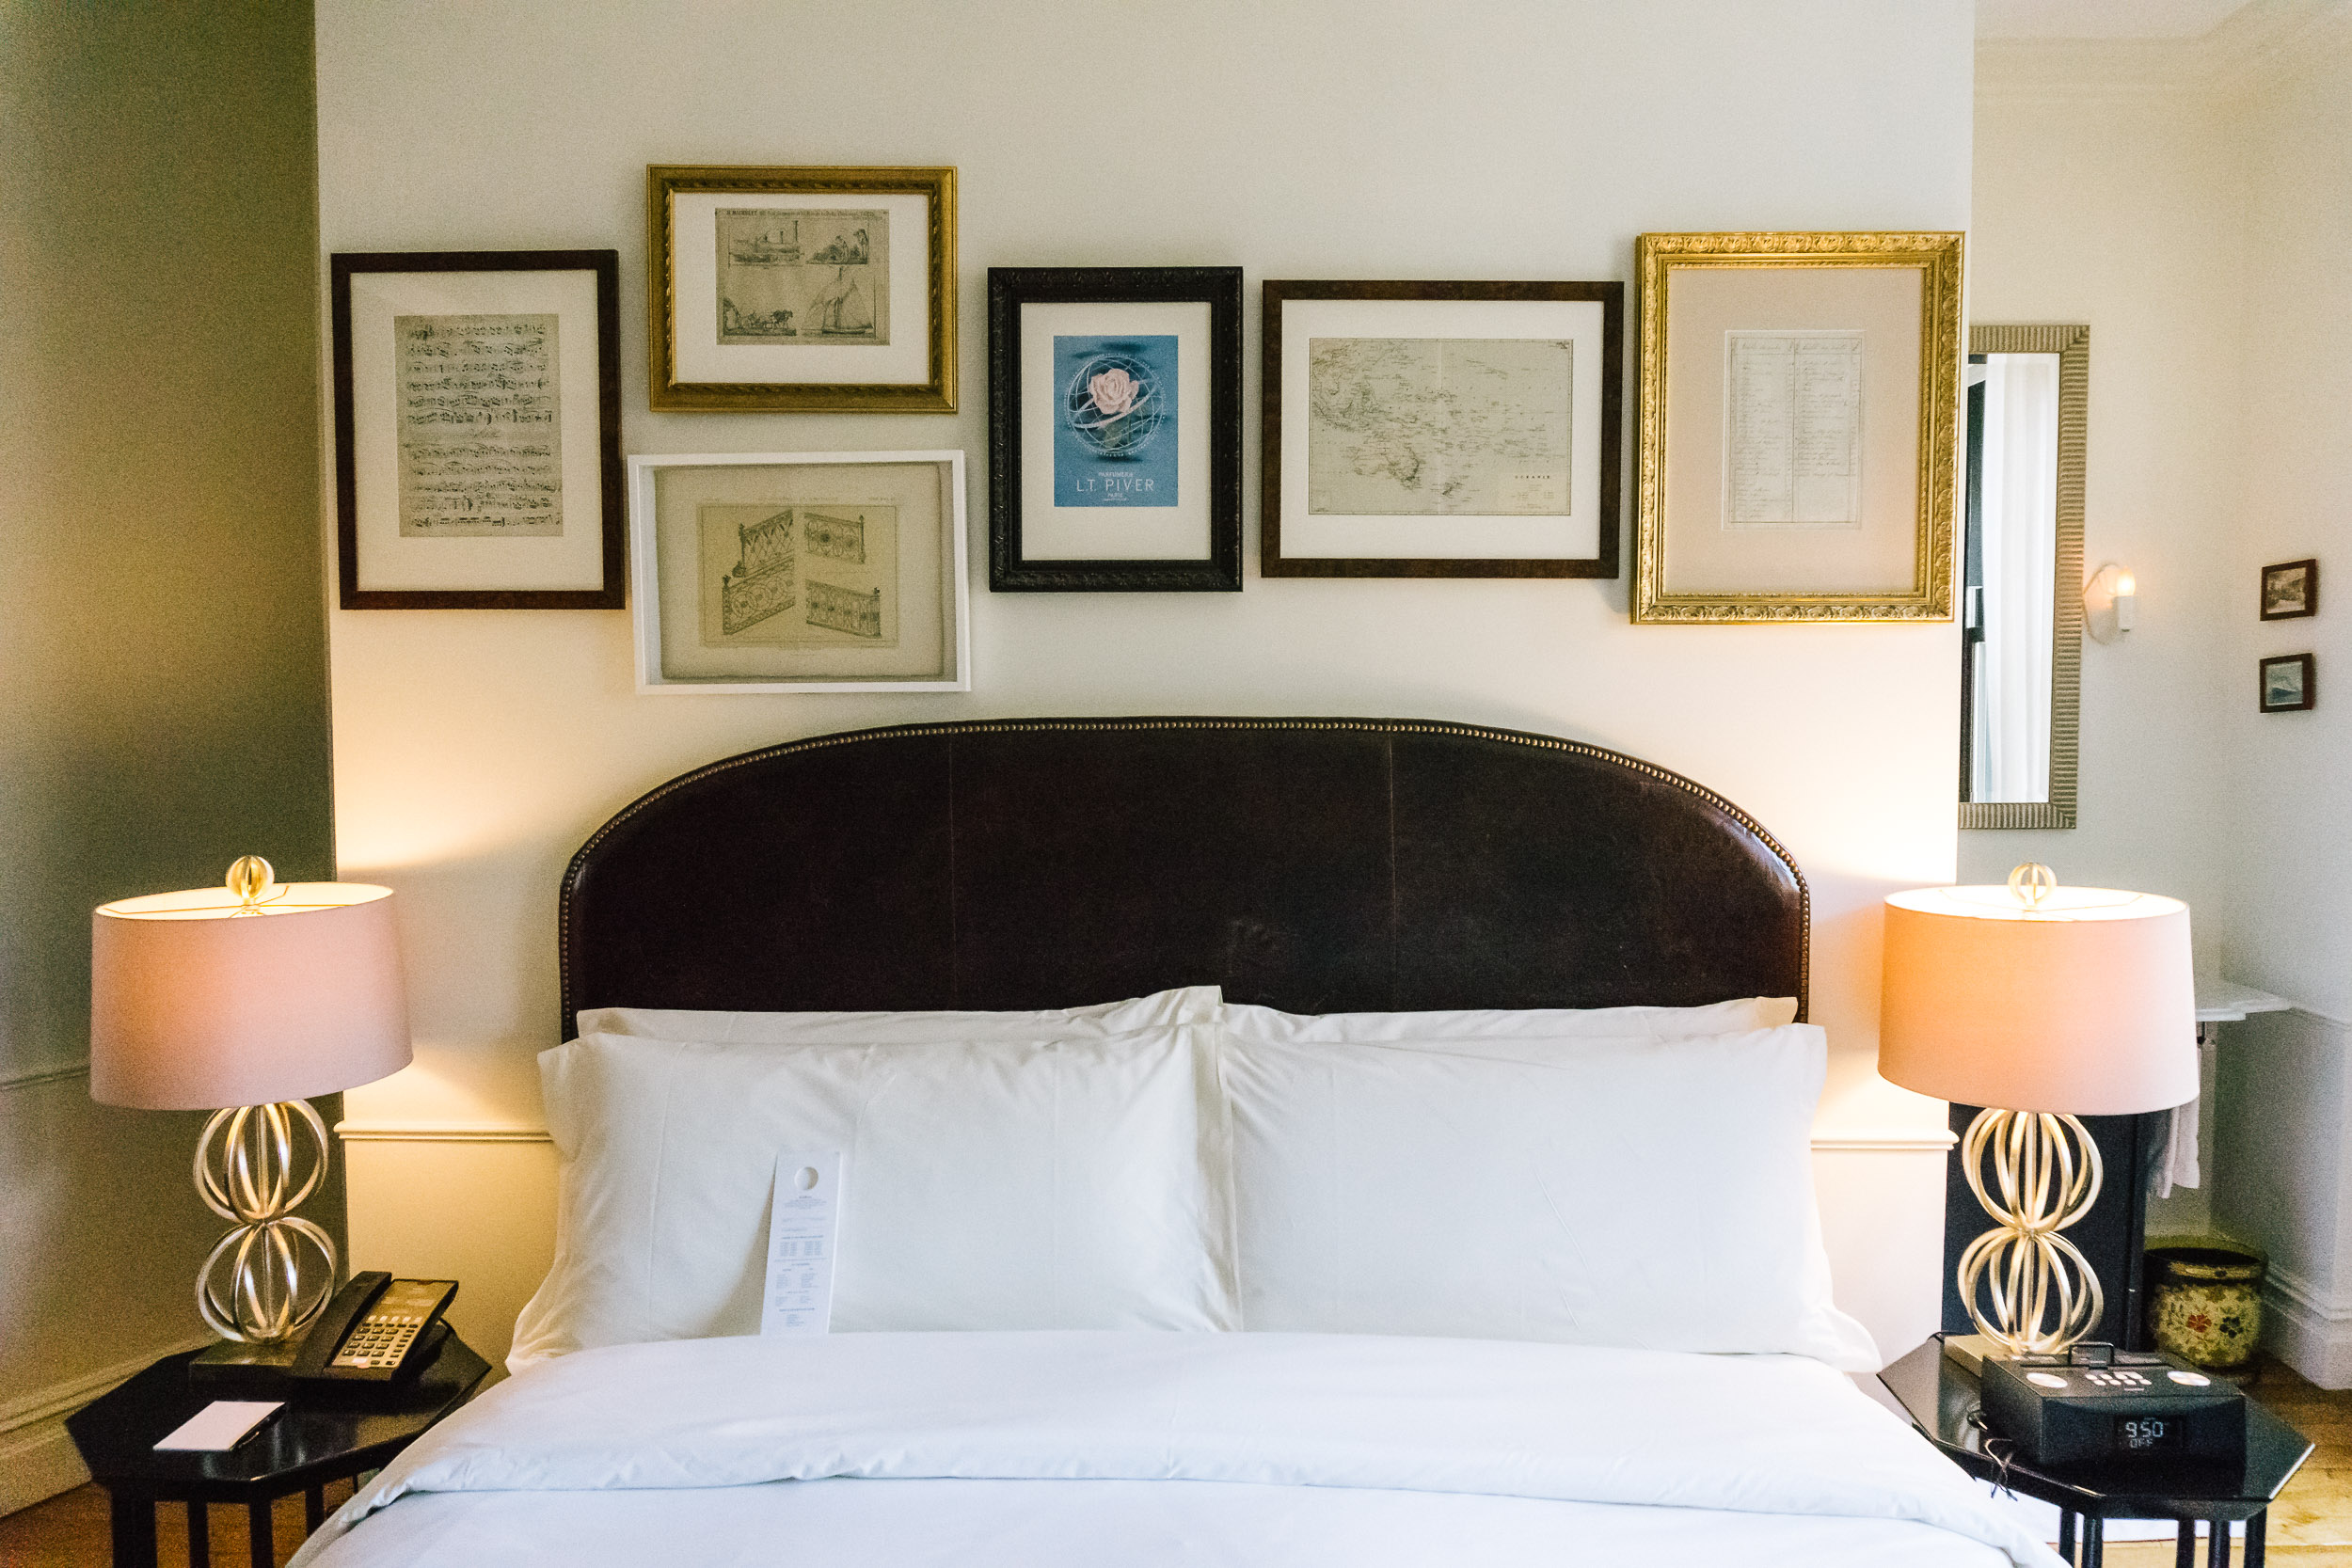 JC-THE NOMAD HOTEL NYC-3